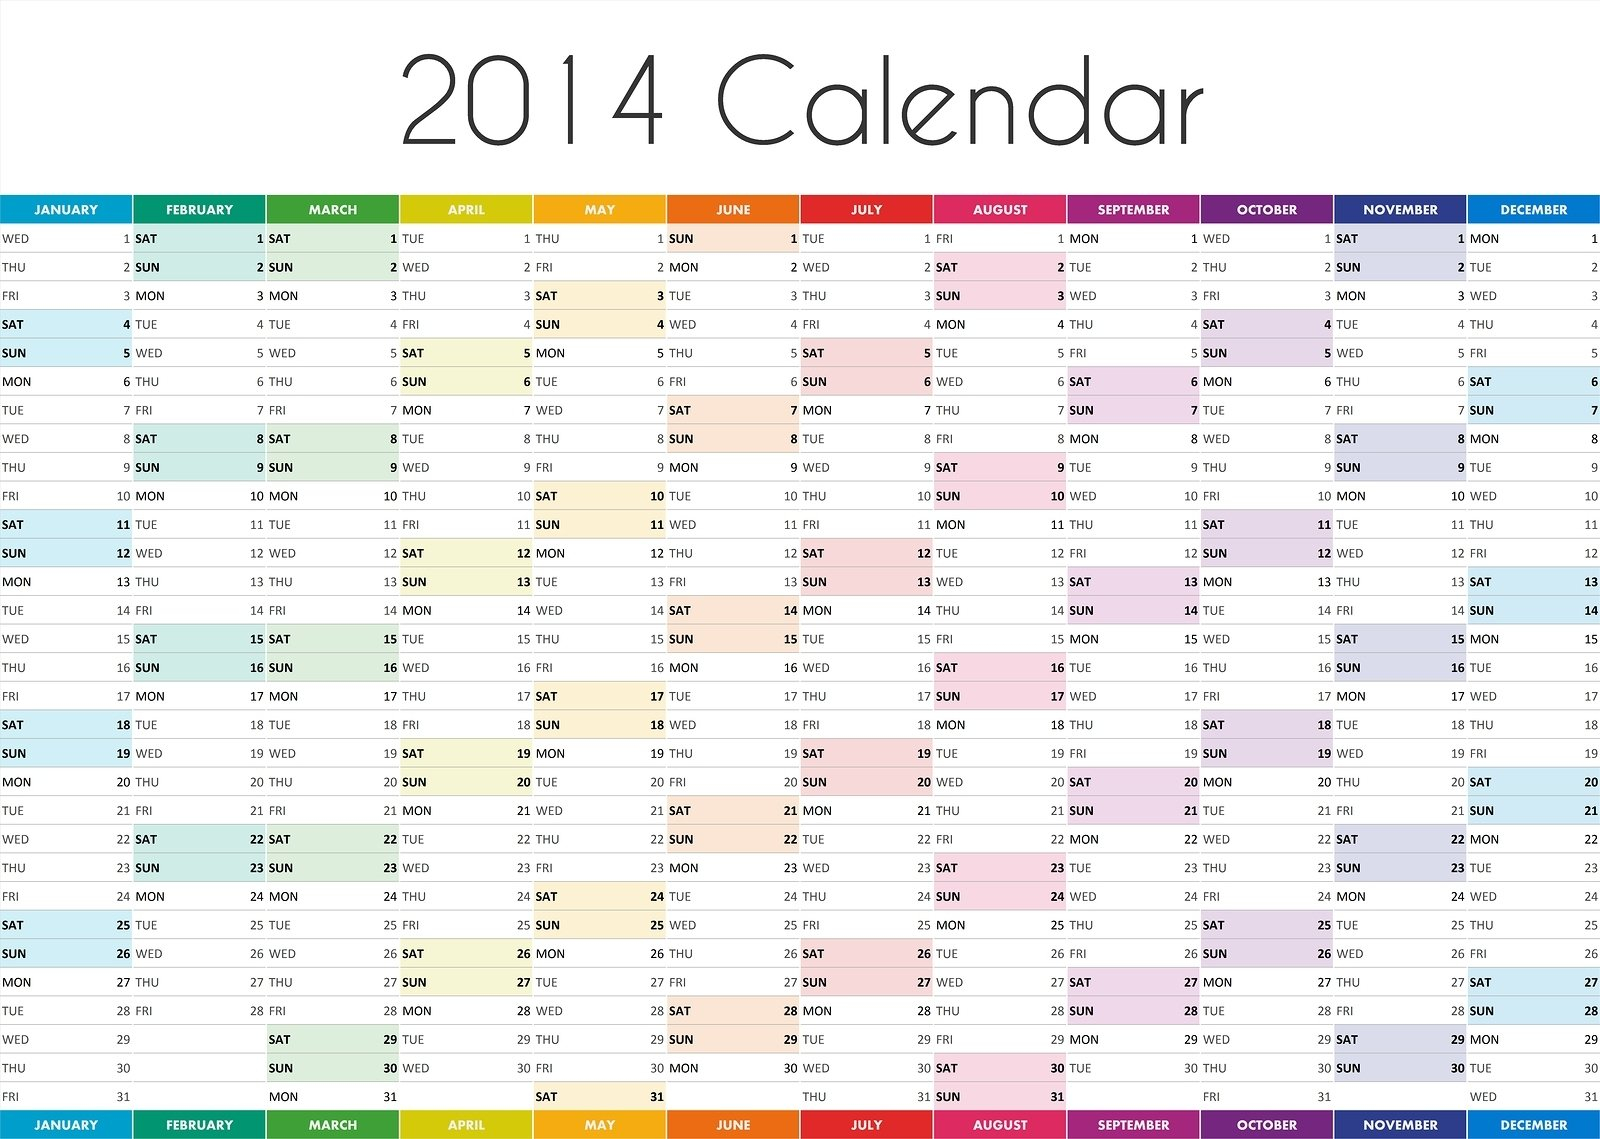 Blank Calendar With Time Slots - Calendar Inspiration Design Free Printable Calendars With Time Slots